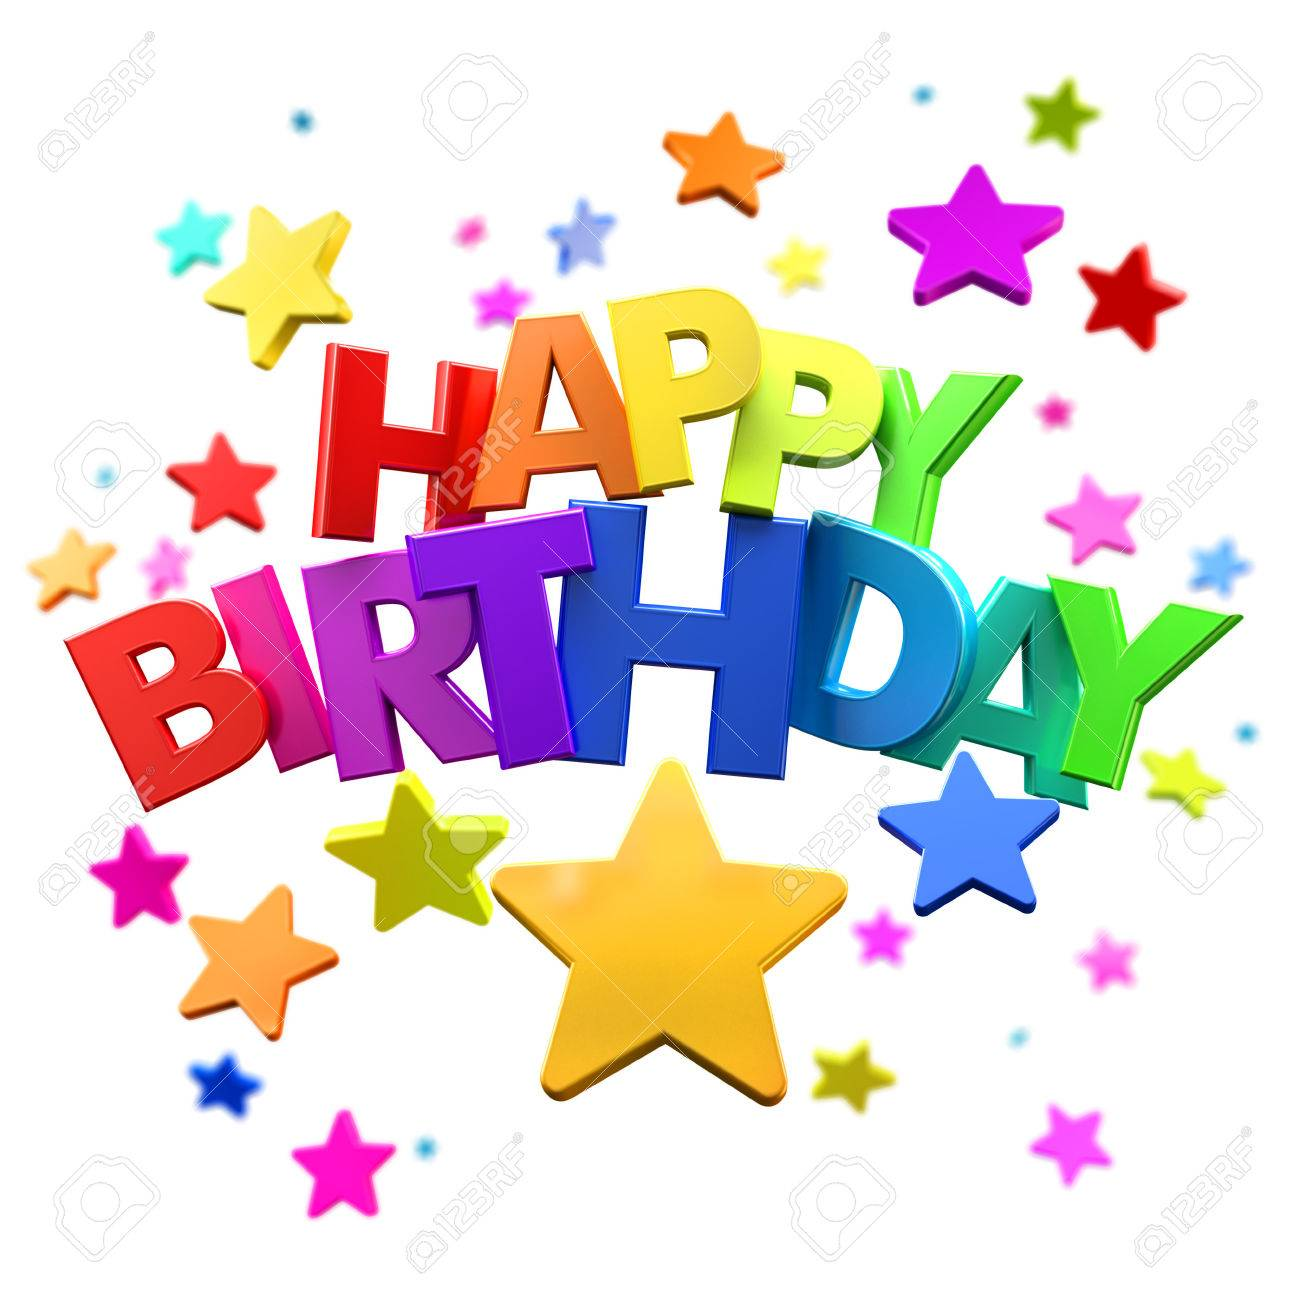 happy birthday star ; 38897937-3d-rendering-of-a-happy-birthday-greeting-message-with-stars